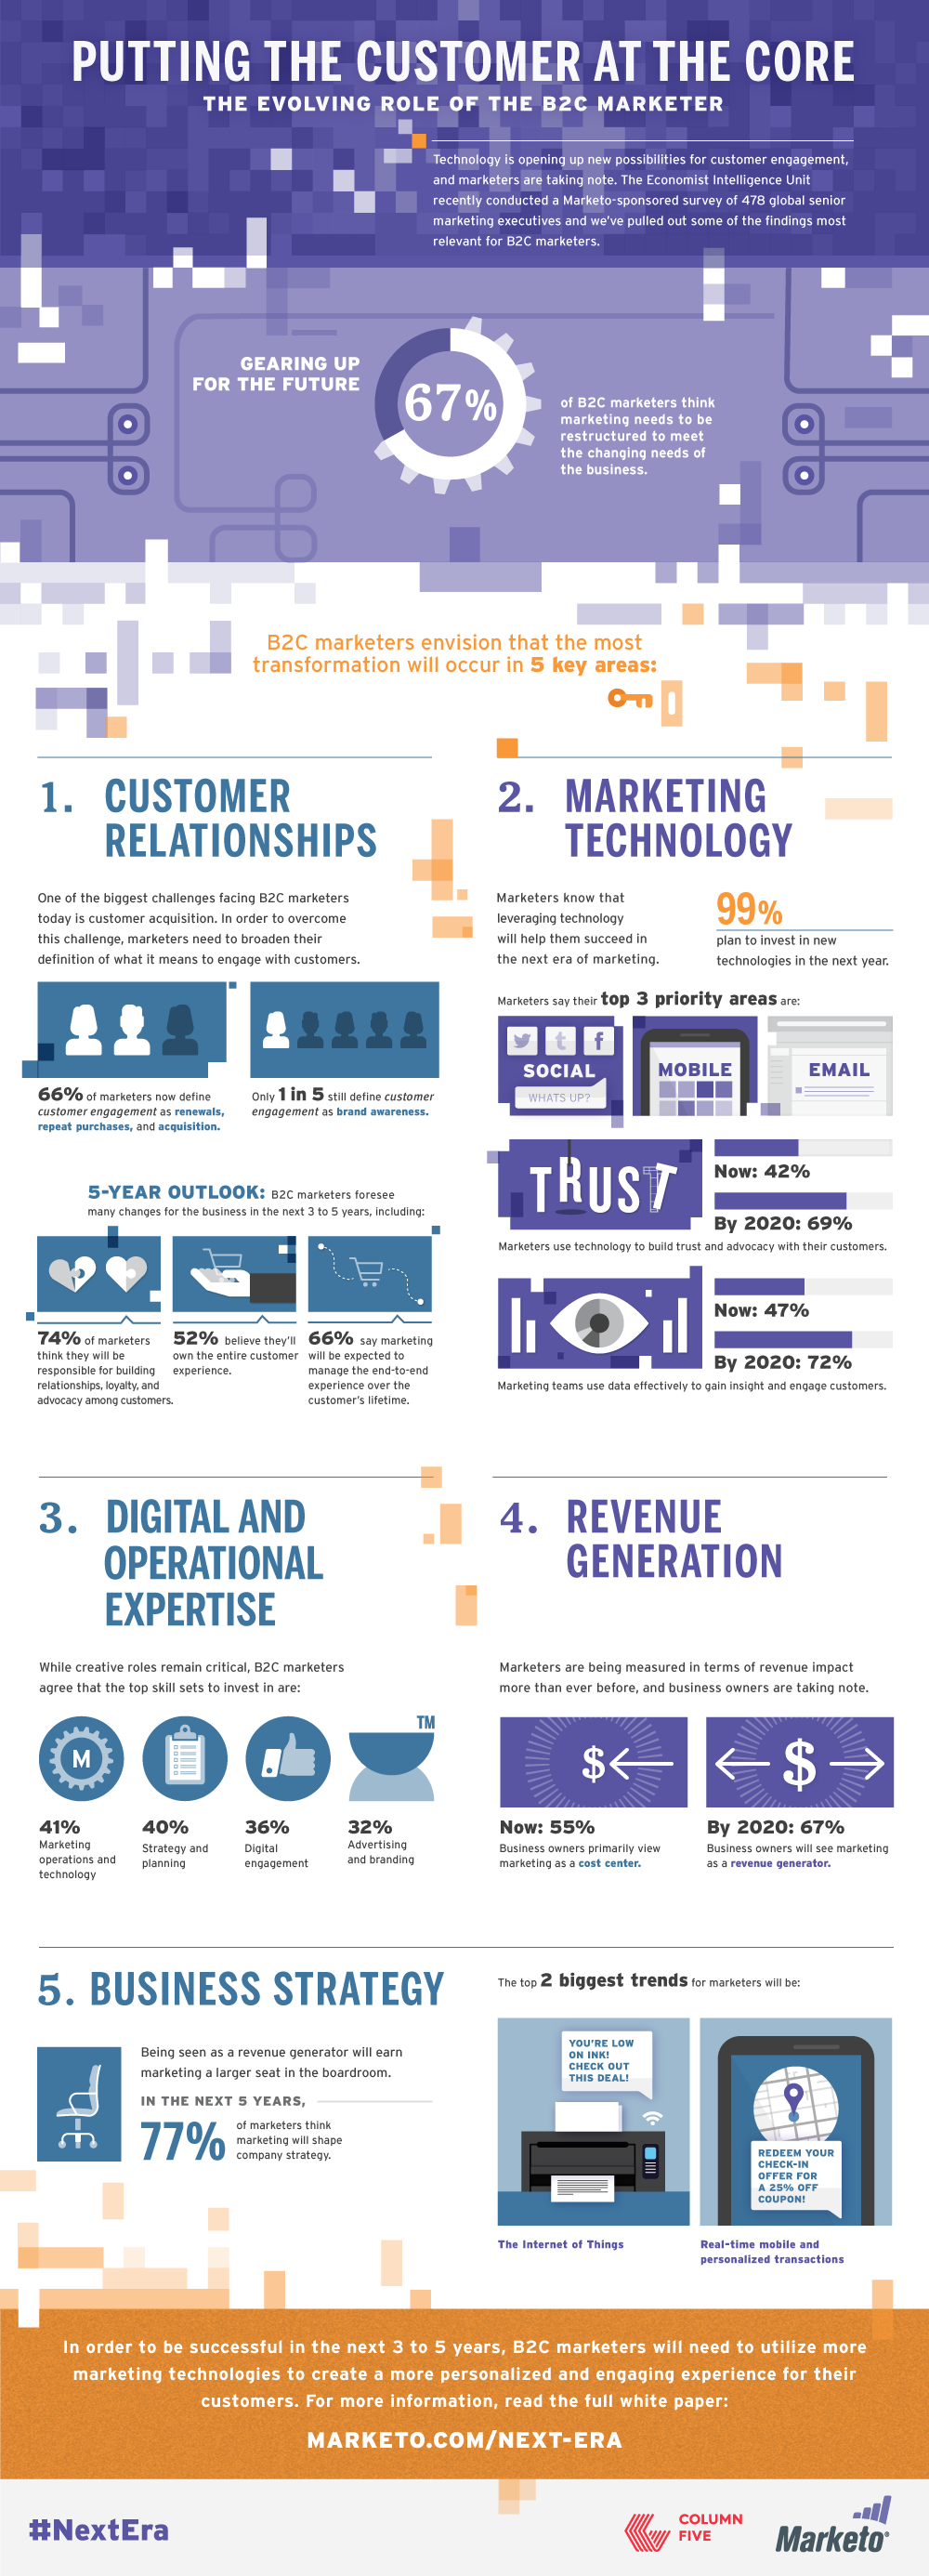 Putting The Customer At The Core: The Evolving Role Of The B2C Marketer - #infographic